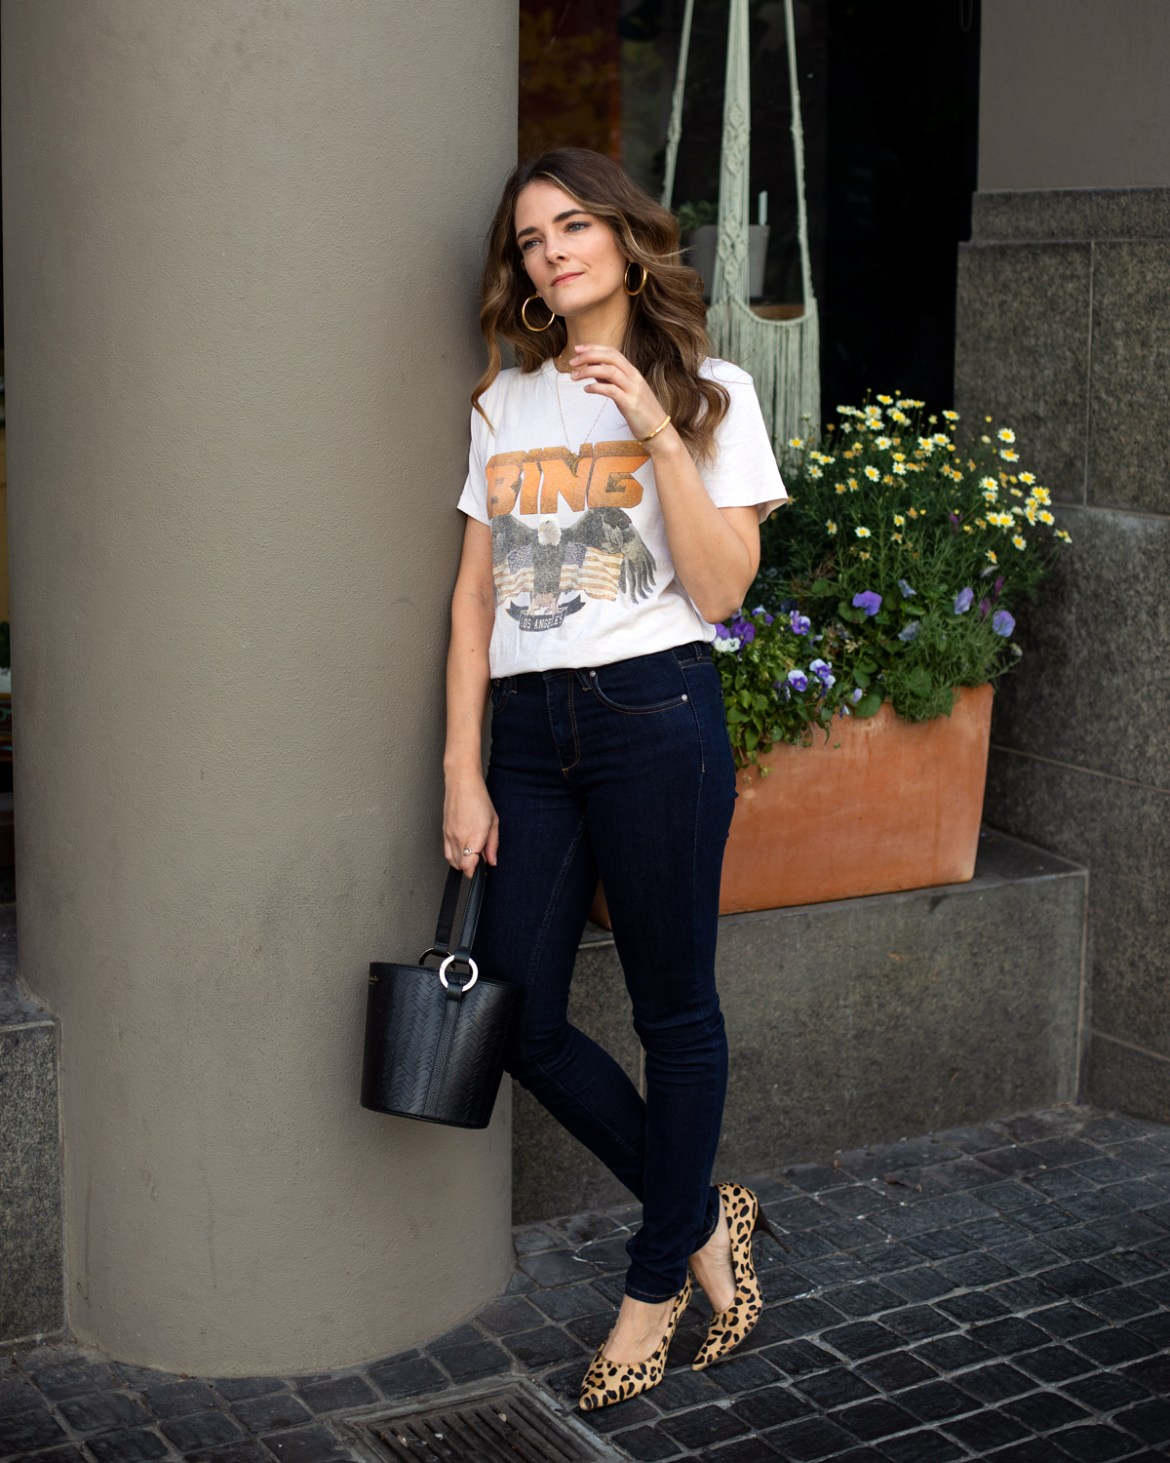 Anine Bing vintage tee outfit with Reiko skinny jeans and leopard print heels worn by fashion blogger Jenelle Witty from Inspiring Wit in a blog post about the 2019 big little goals